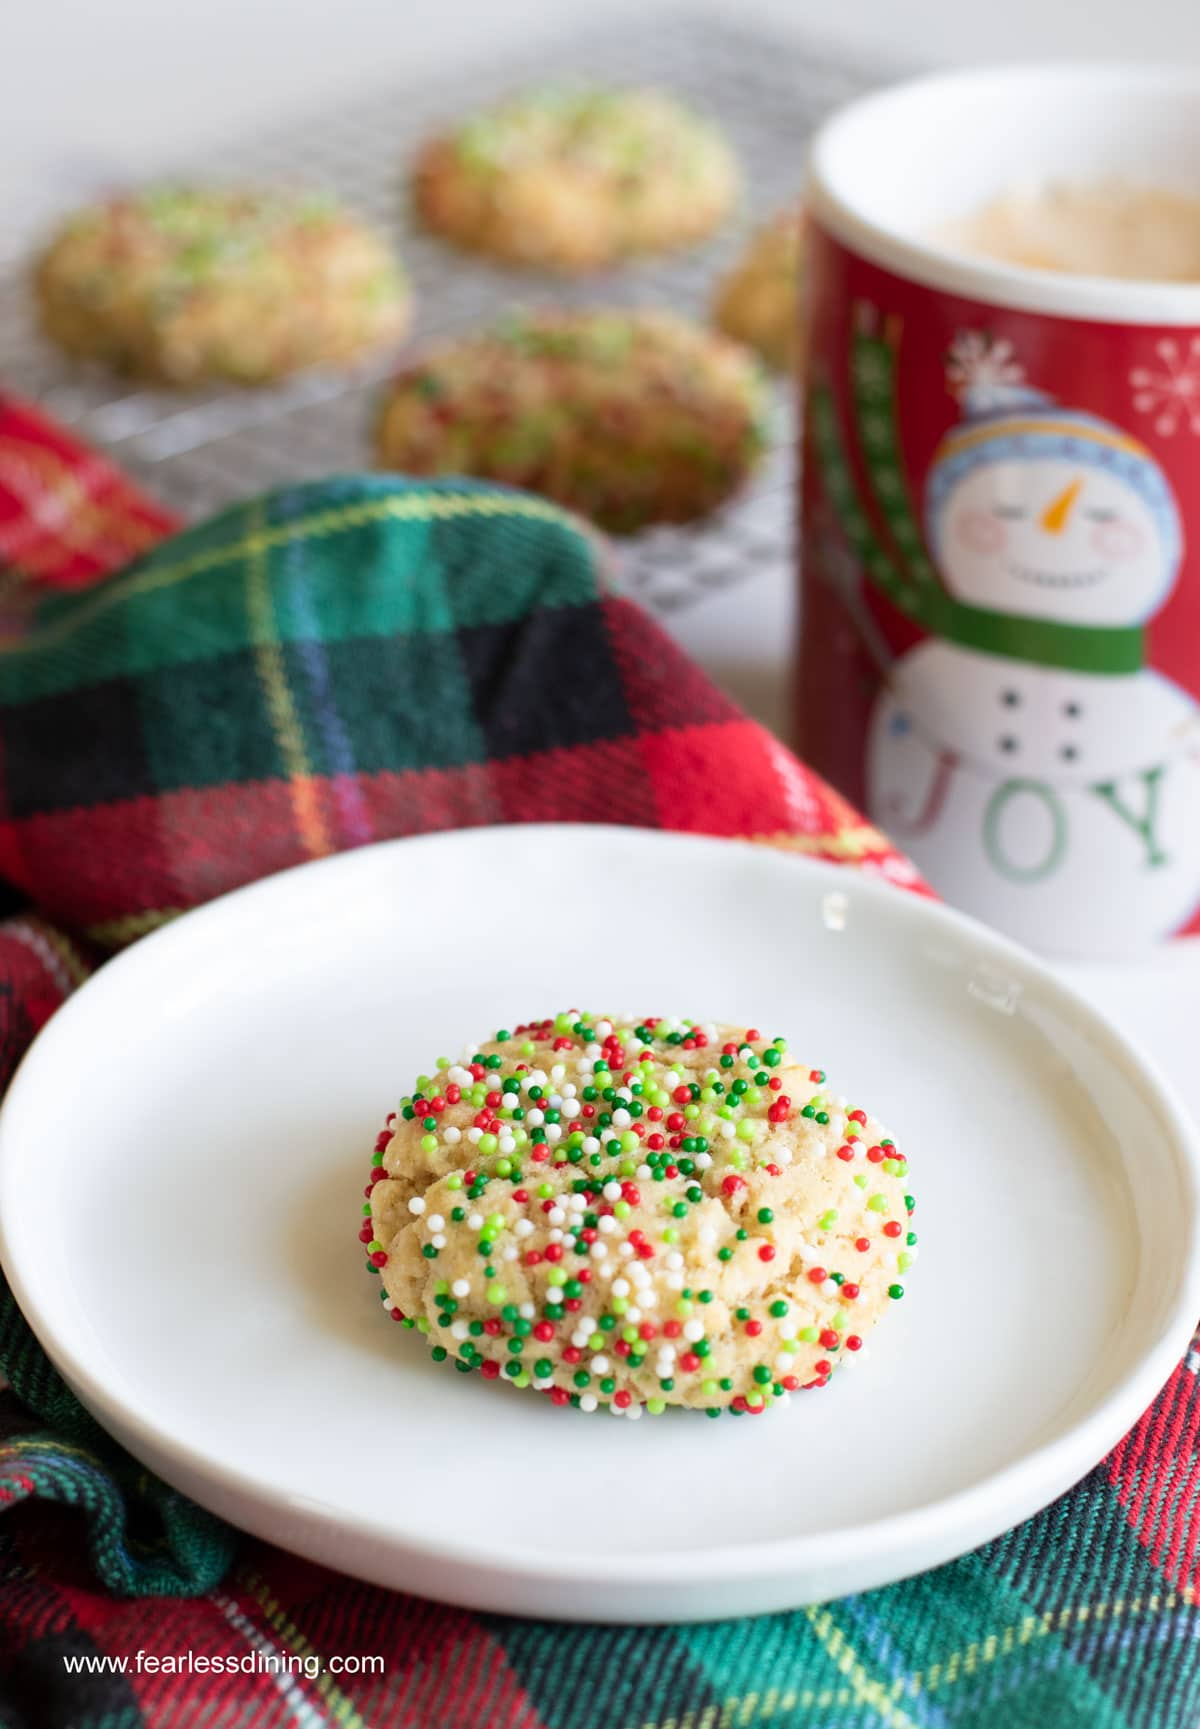 a gluten free cream cheese sugar cookie coated in red and green sprinkles on a plate